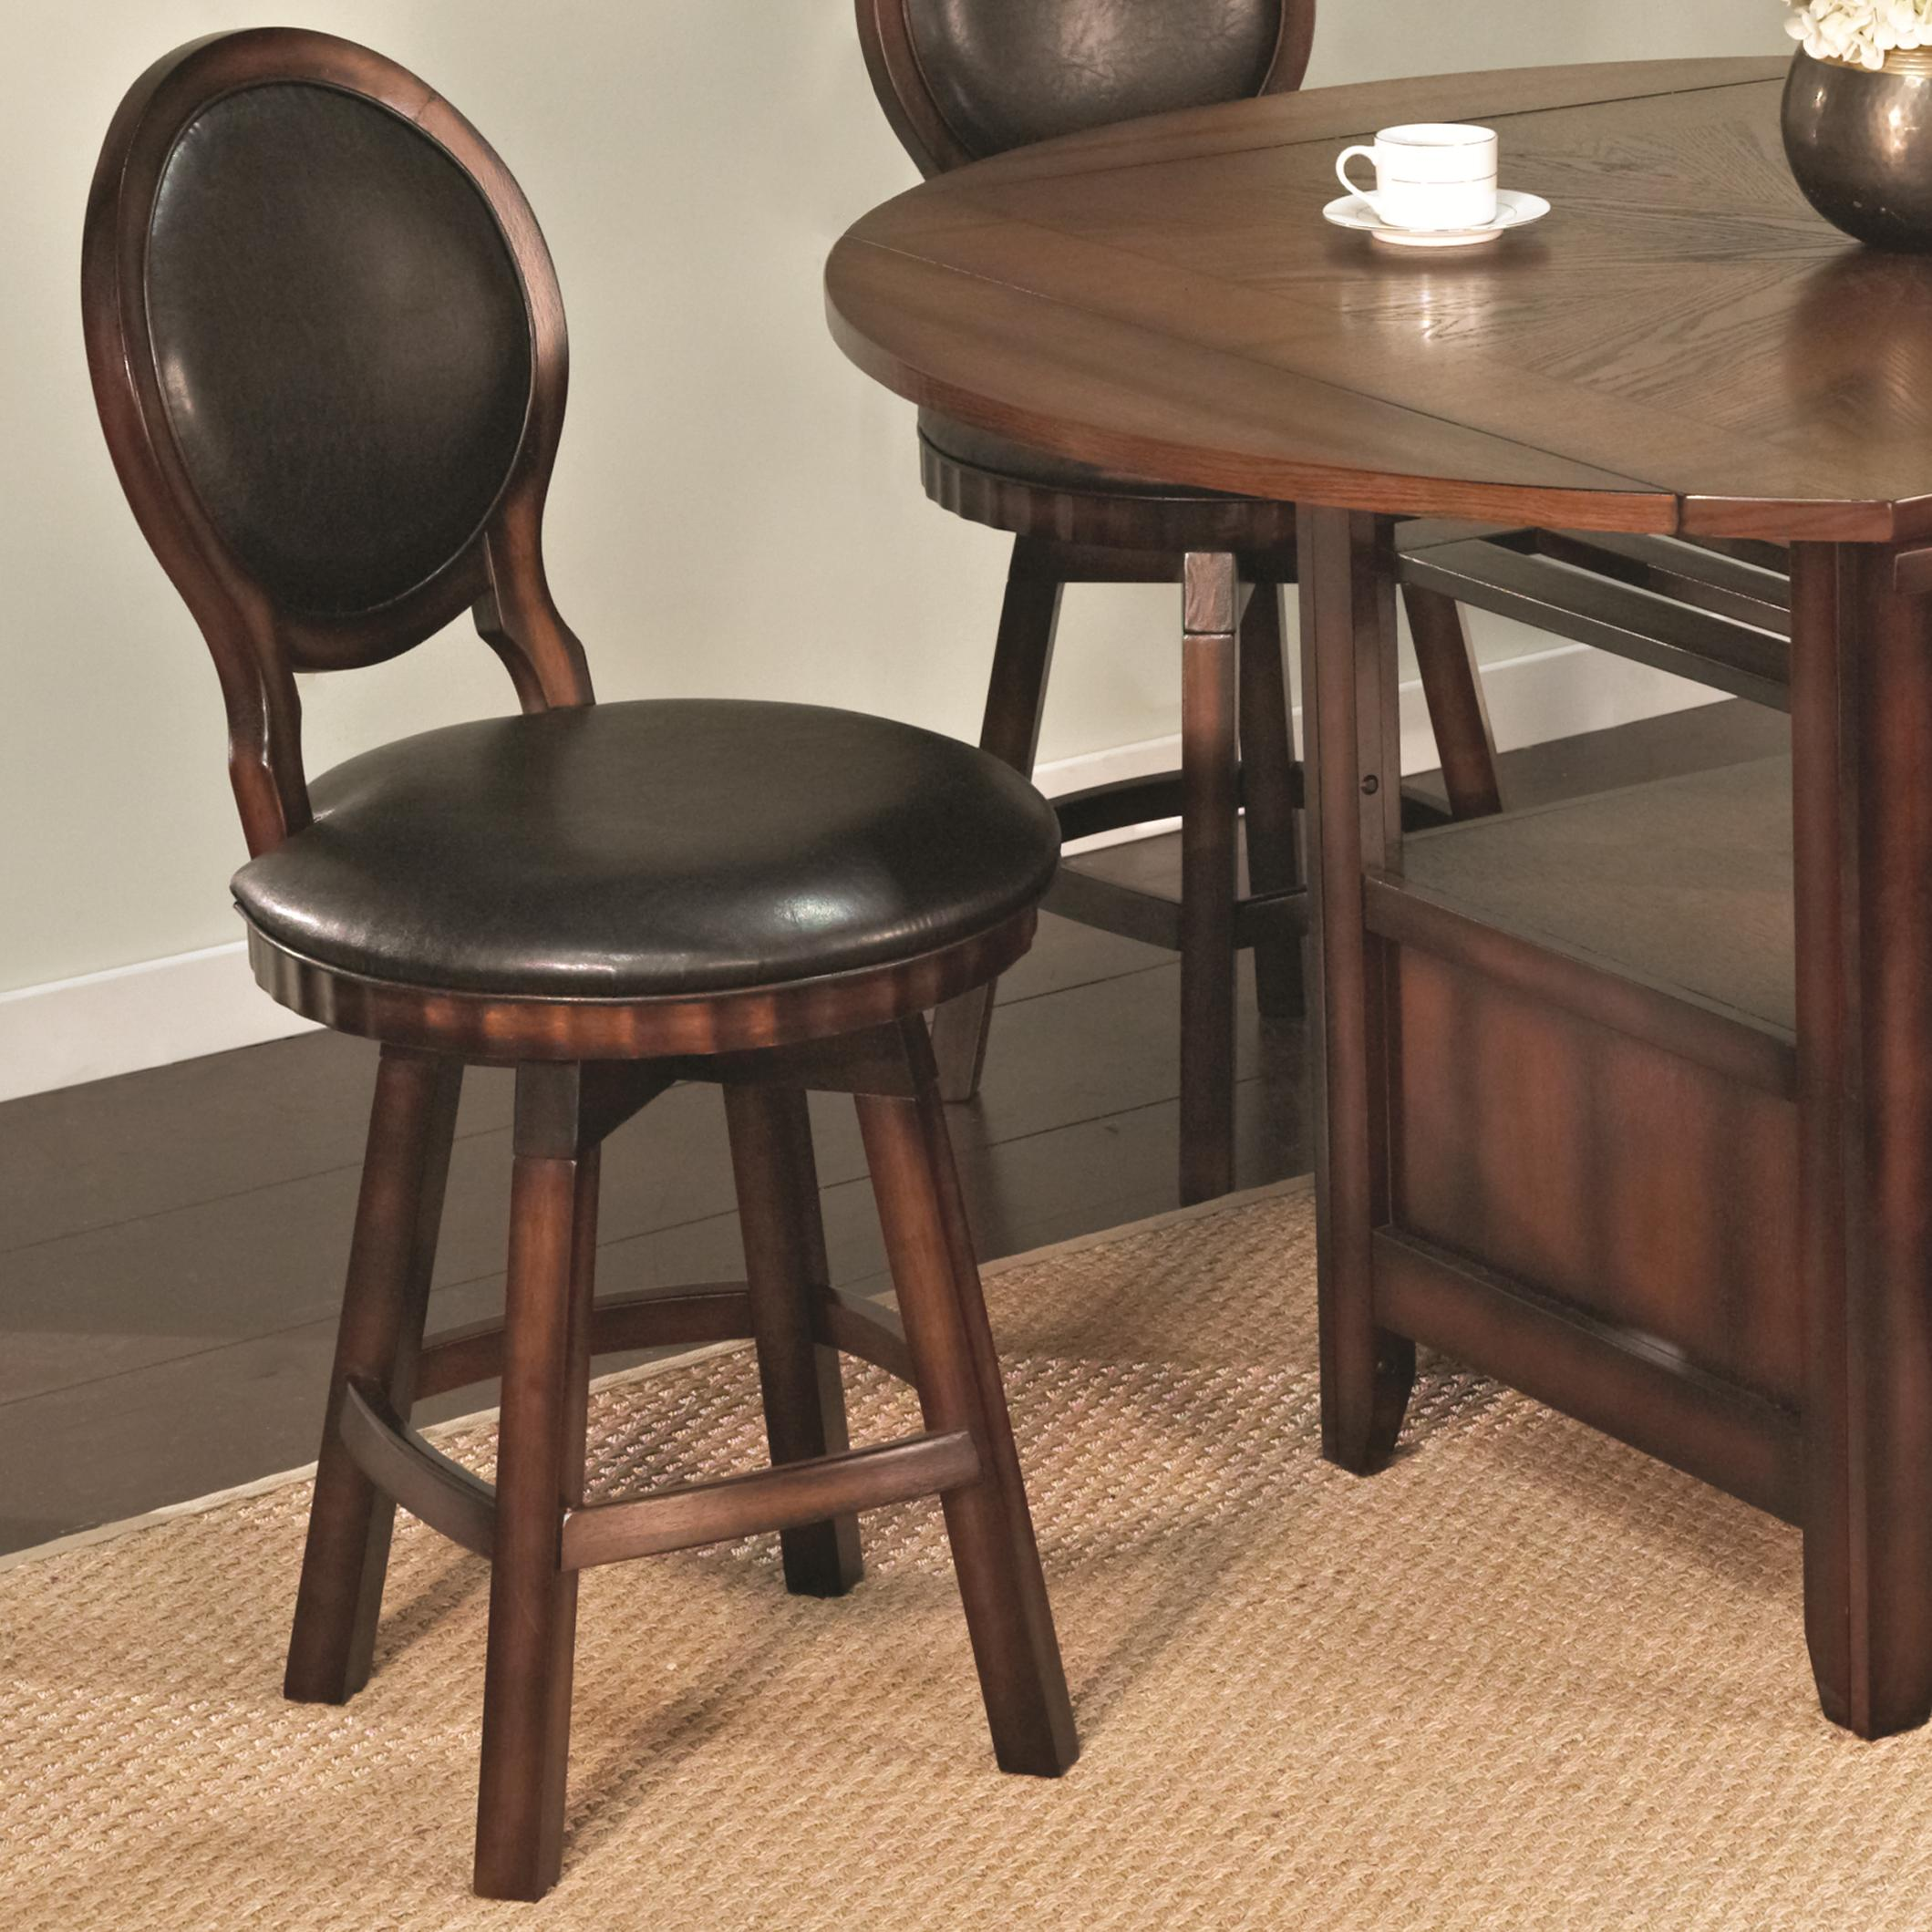 U.S. Furniture Inc 2251/2252 Round Back Dining Side Chair - Item Number: 2252